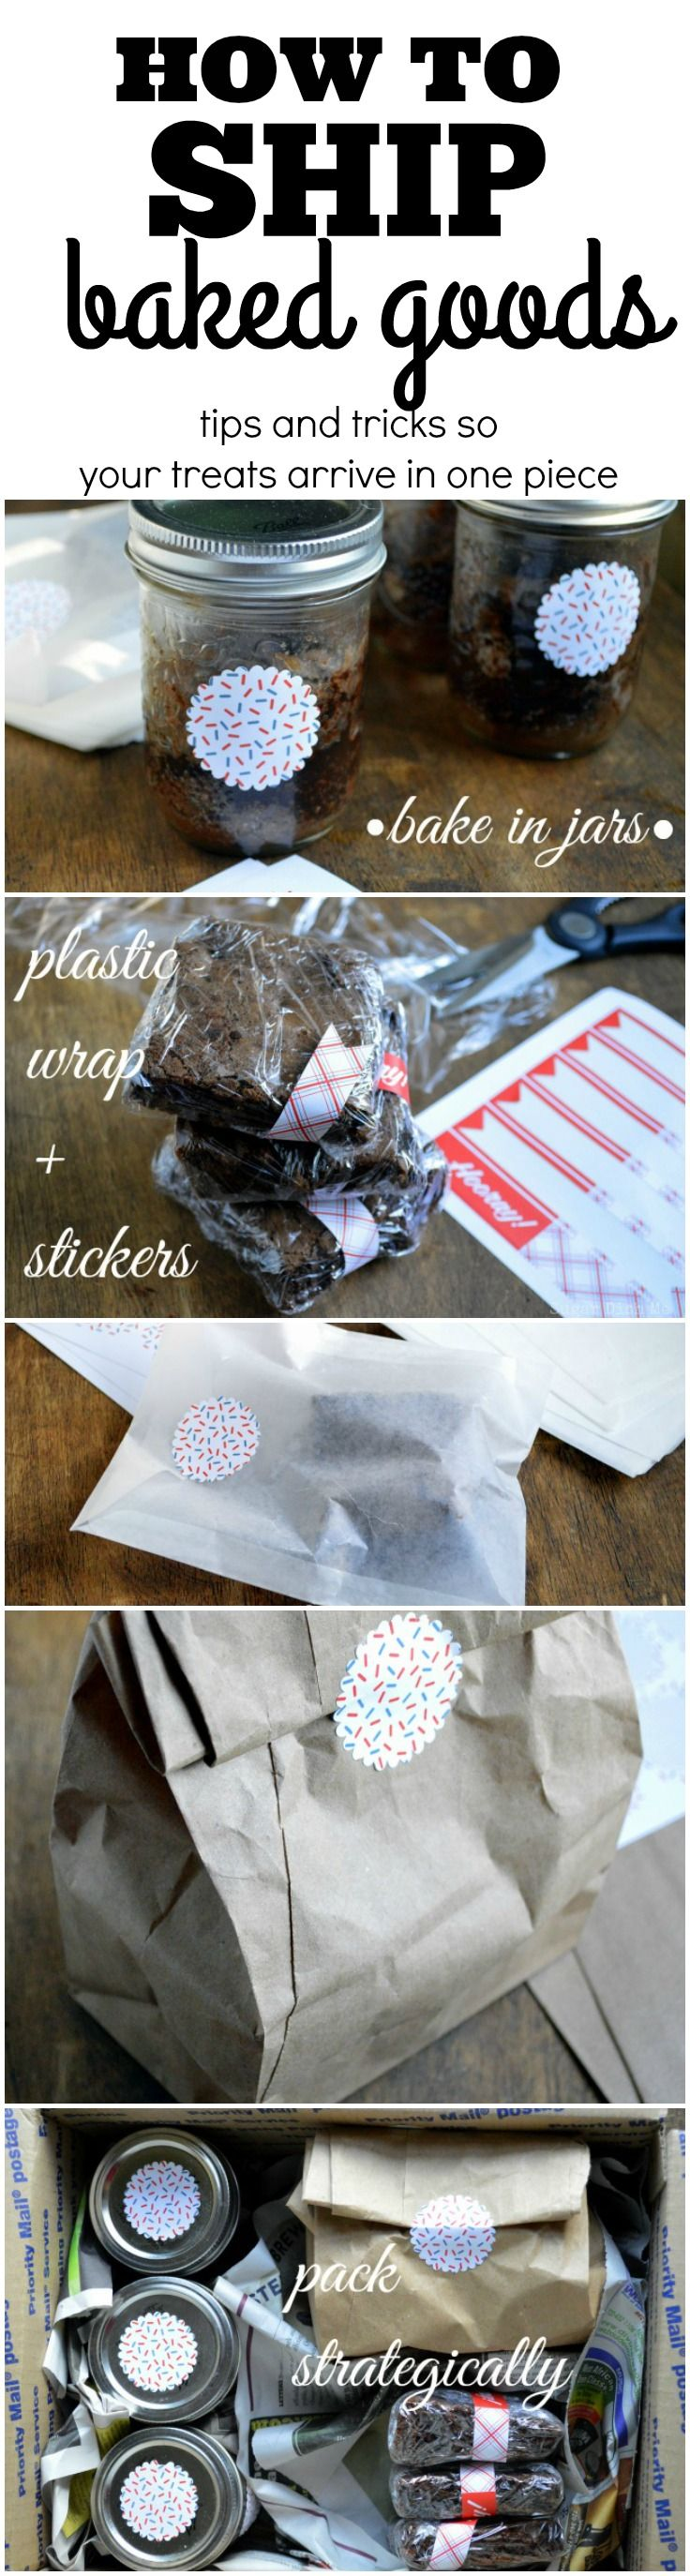 Super easy tips on How to Ship Baked Goods including money-saving postage options, and wrapping to keep your treats fresh and in tact!